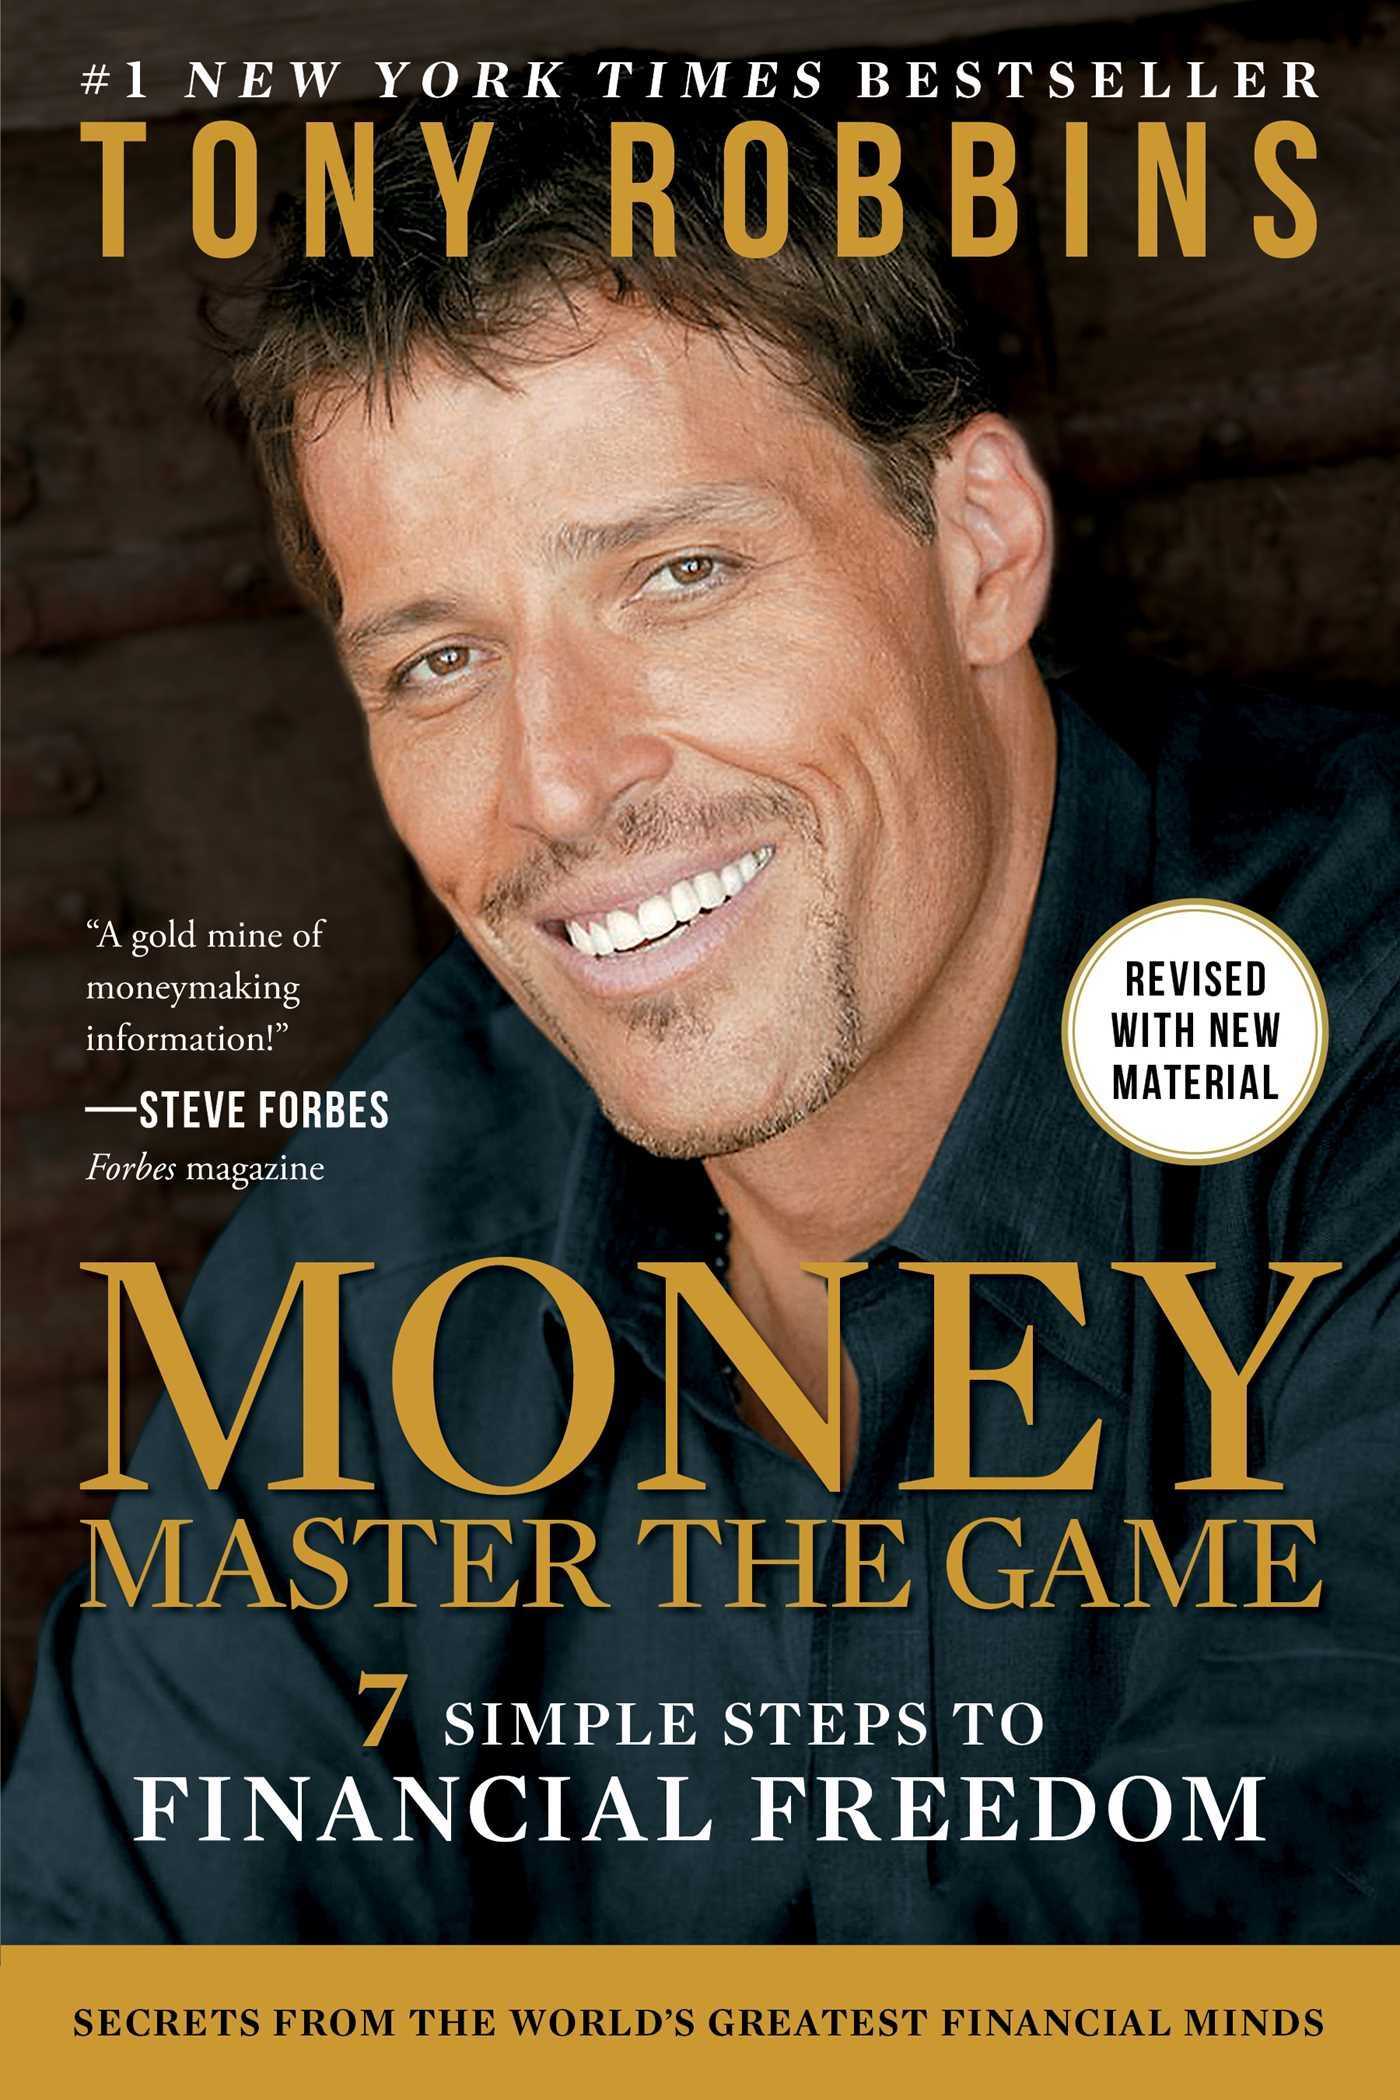 MONEY Master the Game: 7 Simple Steps to Financial Freedom: Tony Robbins:  8601423537887: Amazon.com: Books